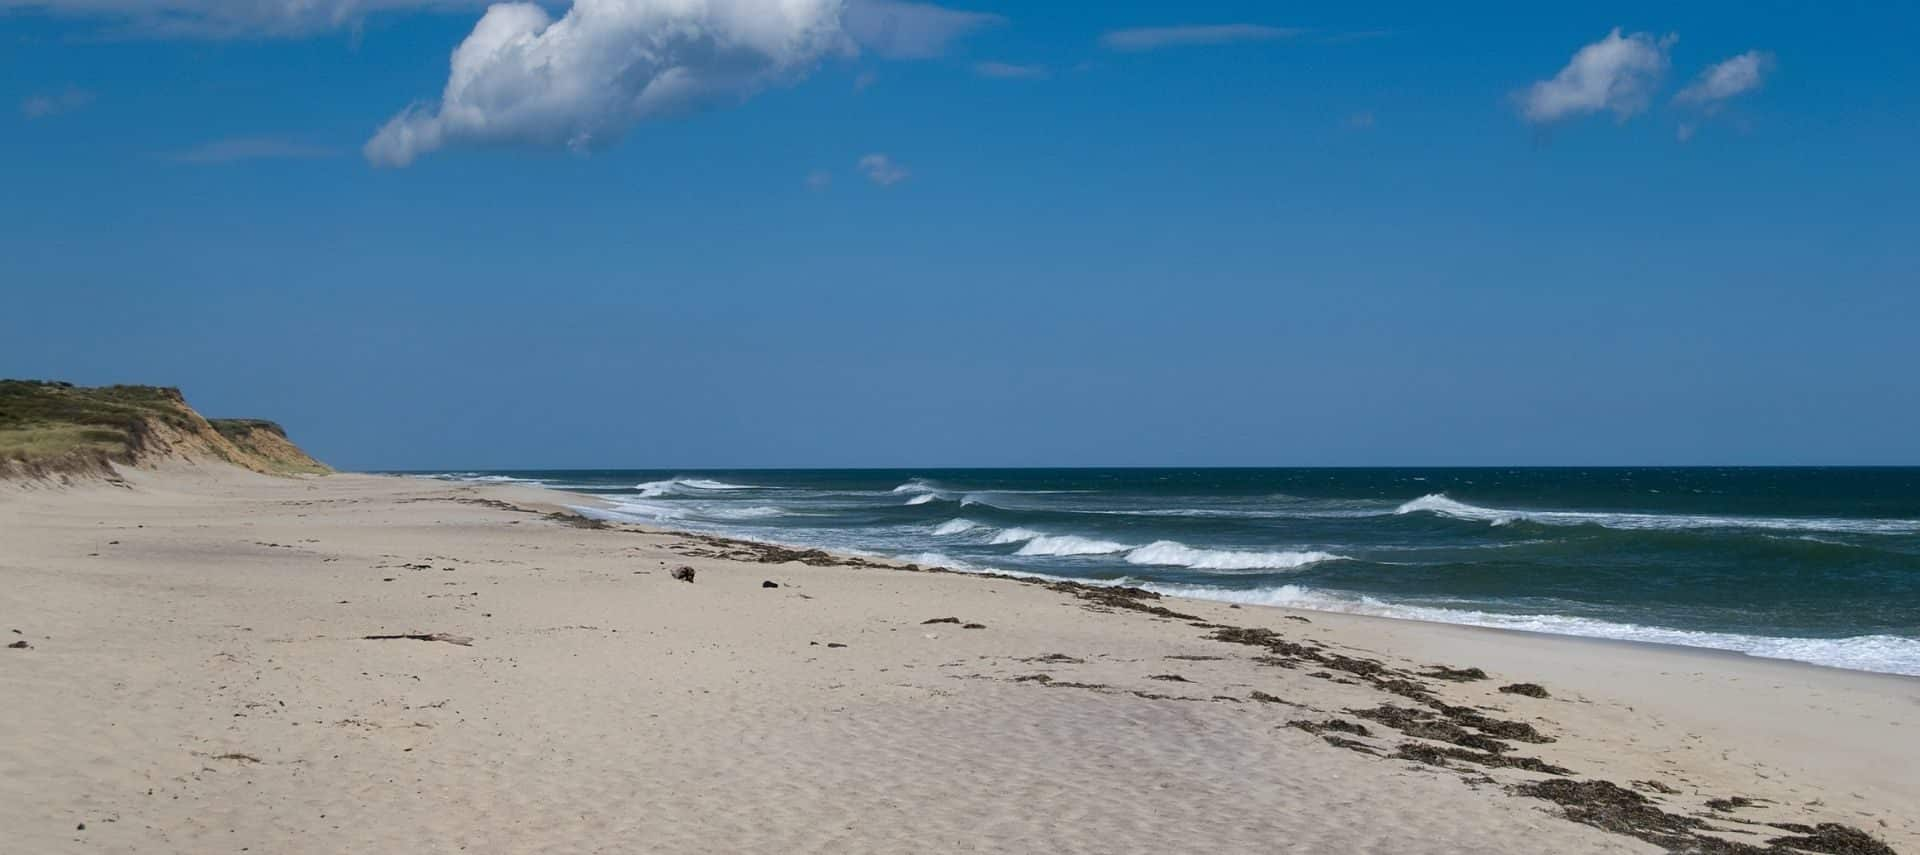 Sandy beach and blue waters at Cape Cod's National Sea Shore